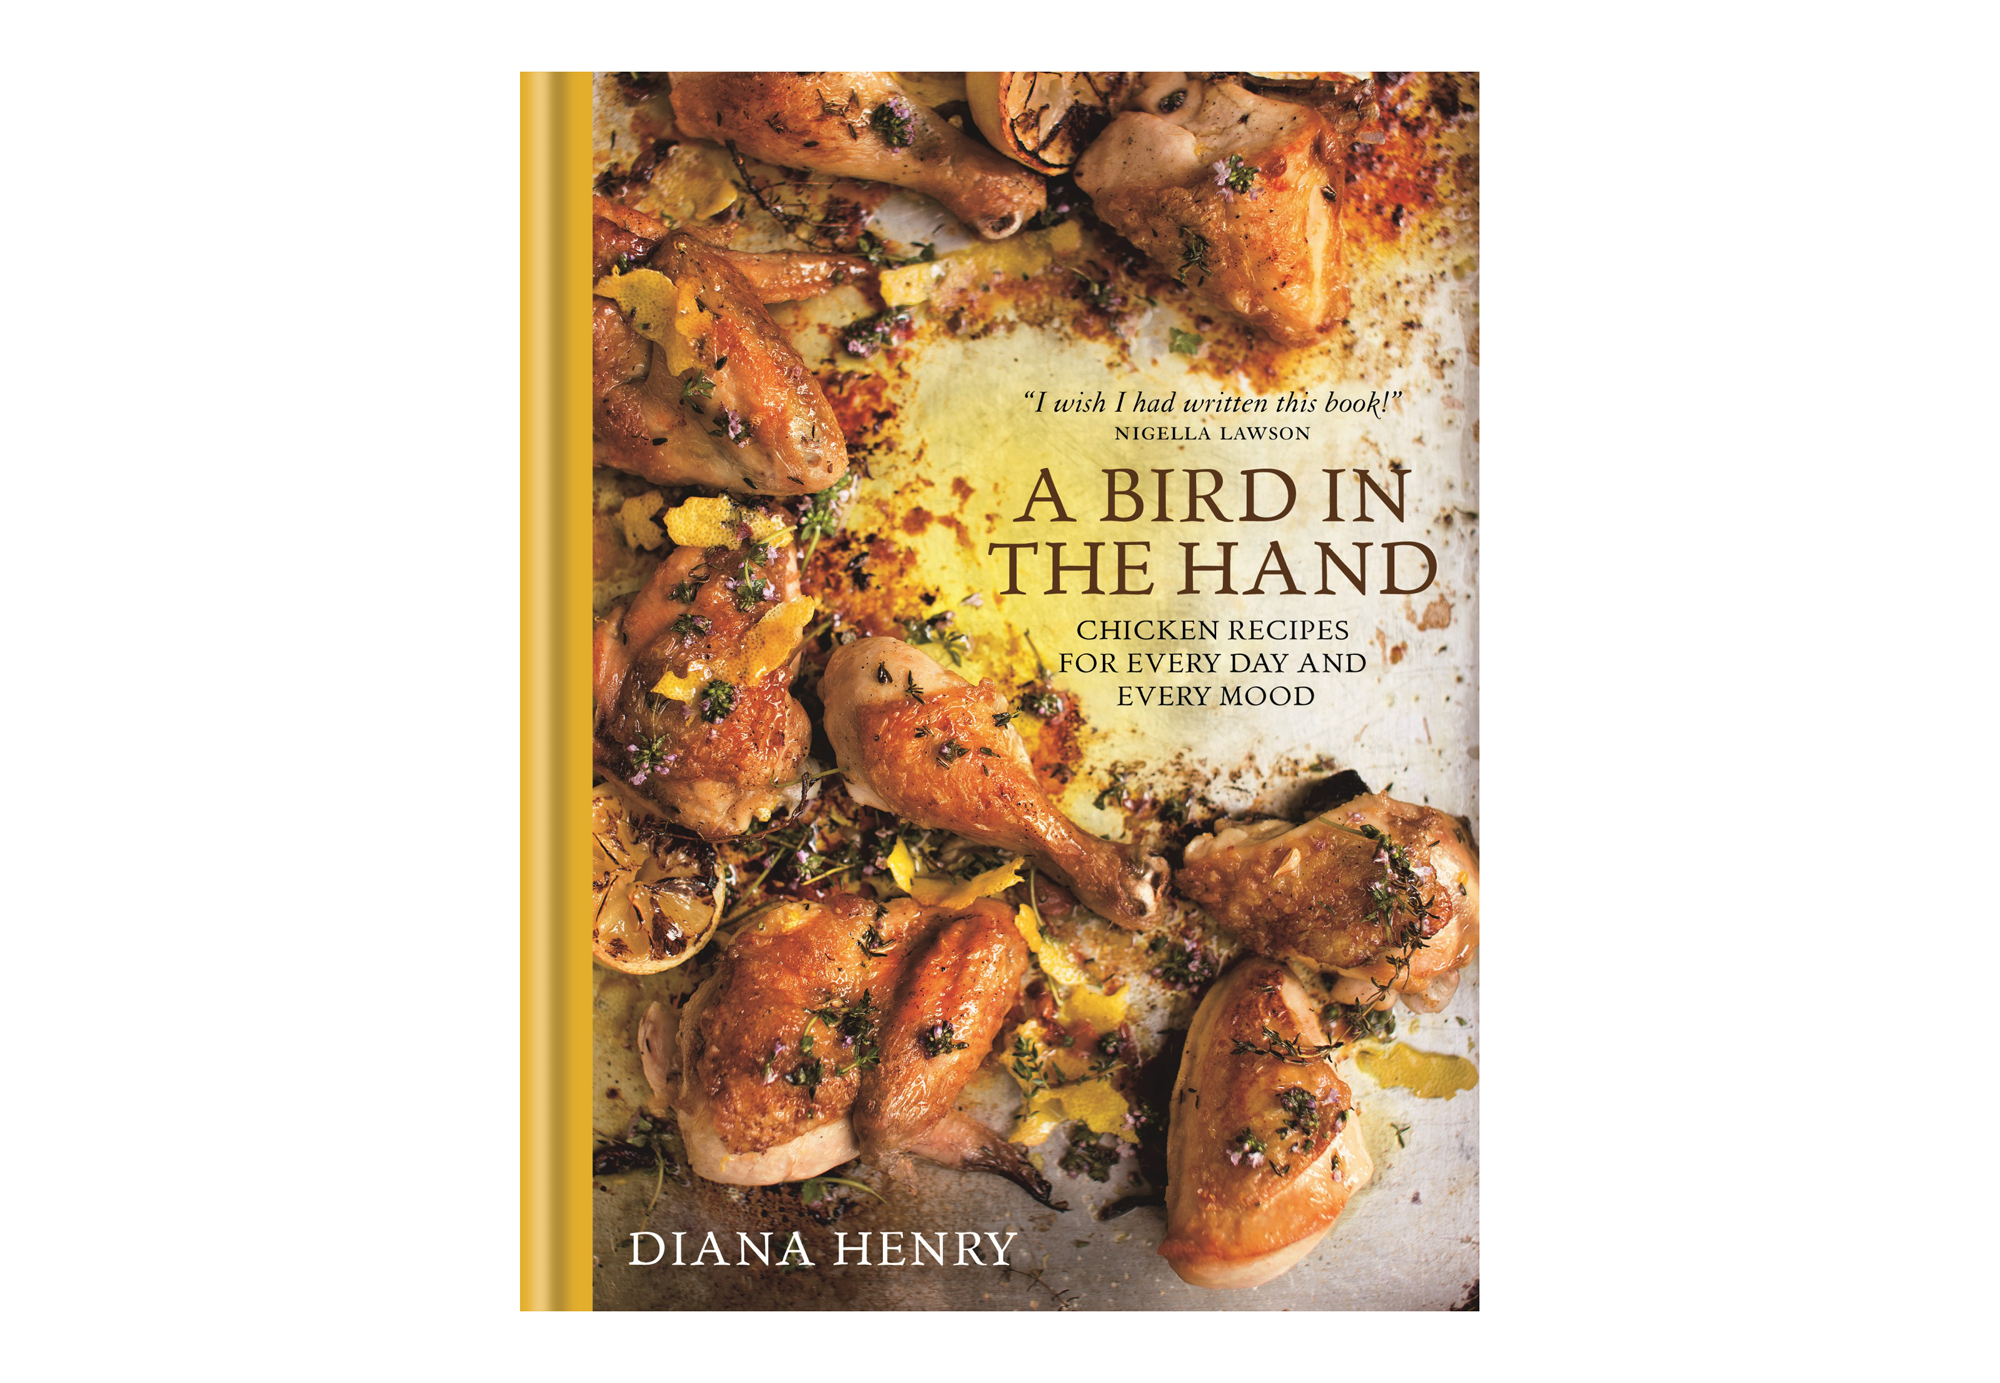 A Bird in the Hand: Chicken Recipes for Every Day and Every Mood, by Diana Henry